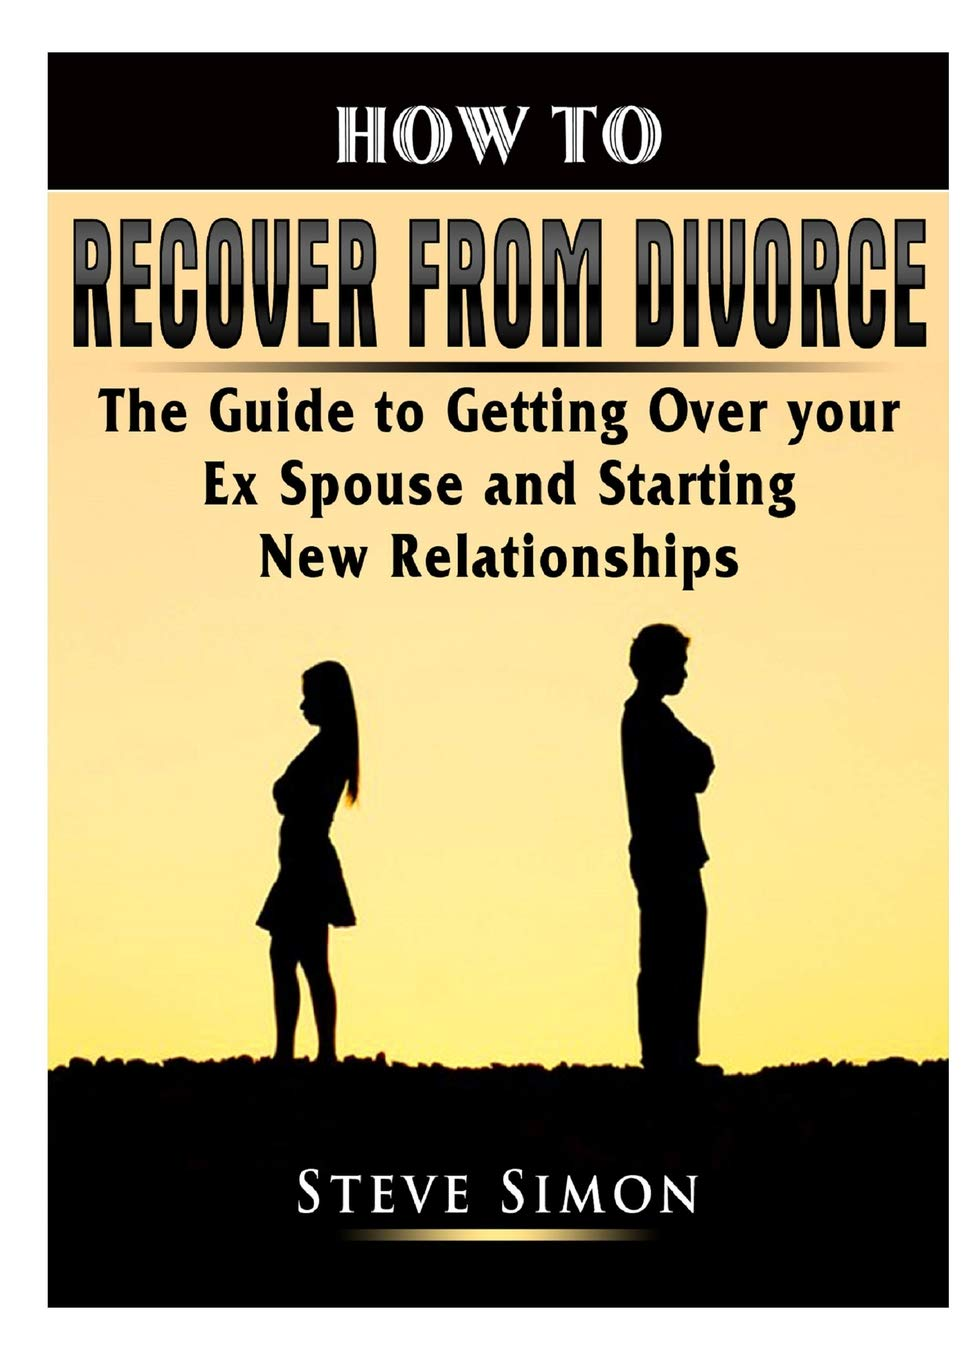 Getting Over Your Divorce in a Single Day